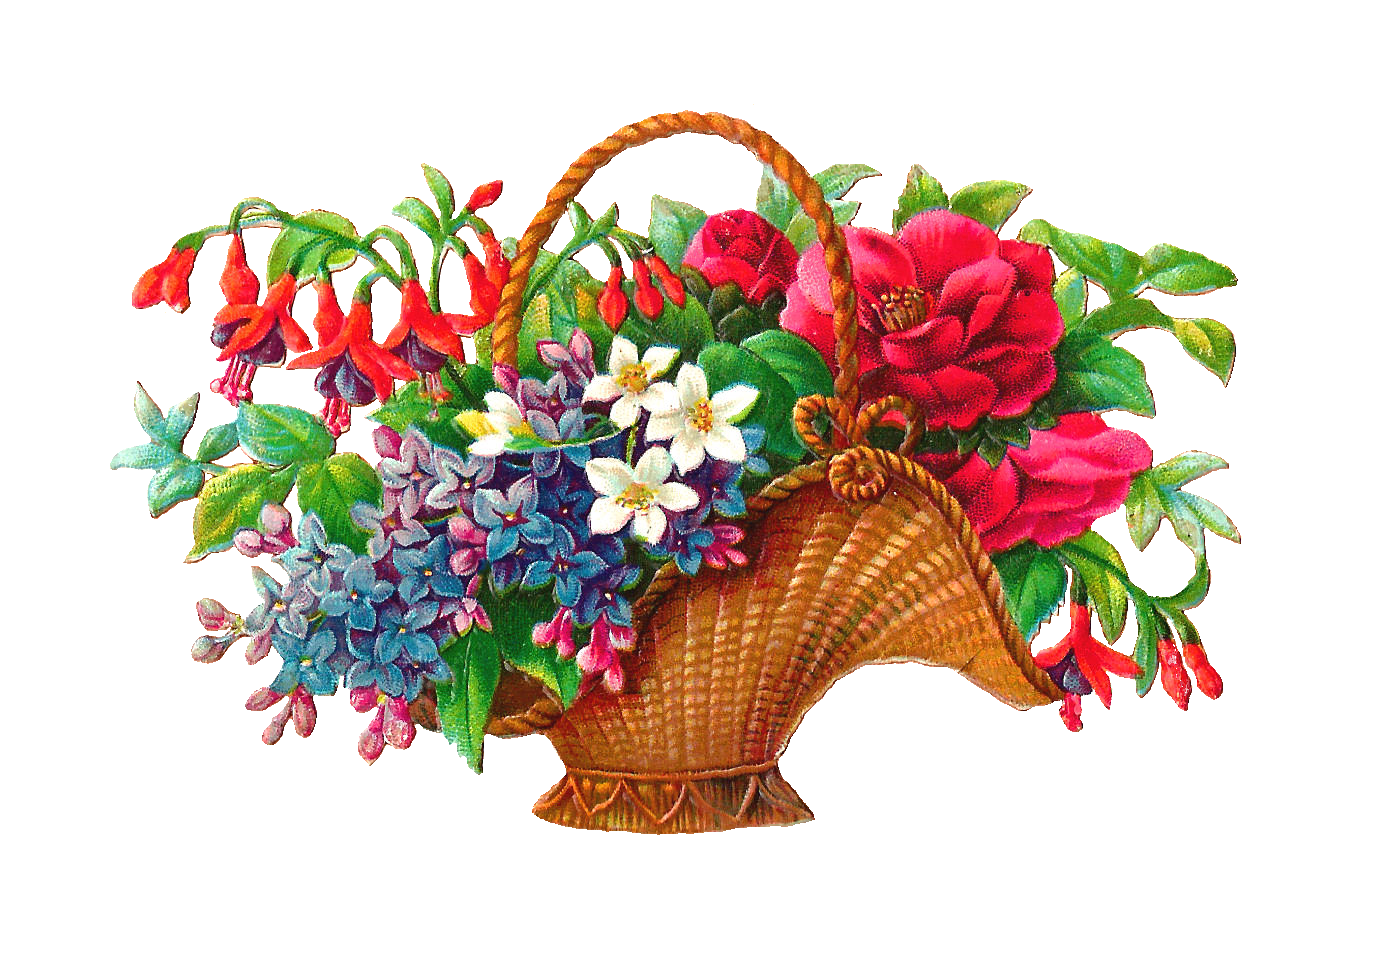 Basketry In Art : Antique images free flower basket clip art wicket